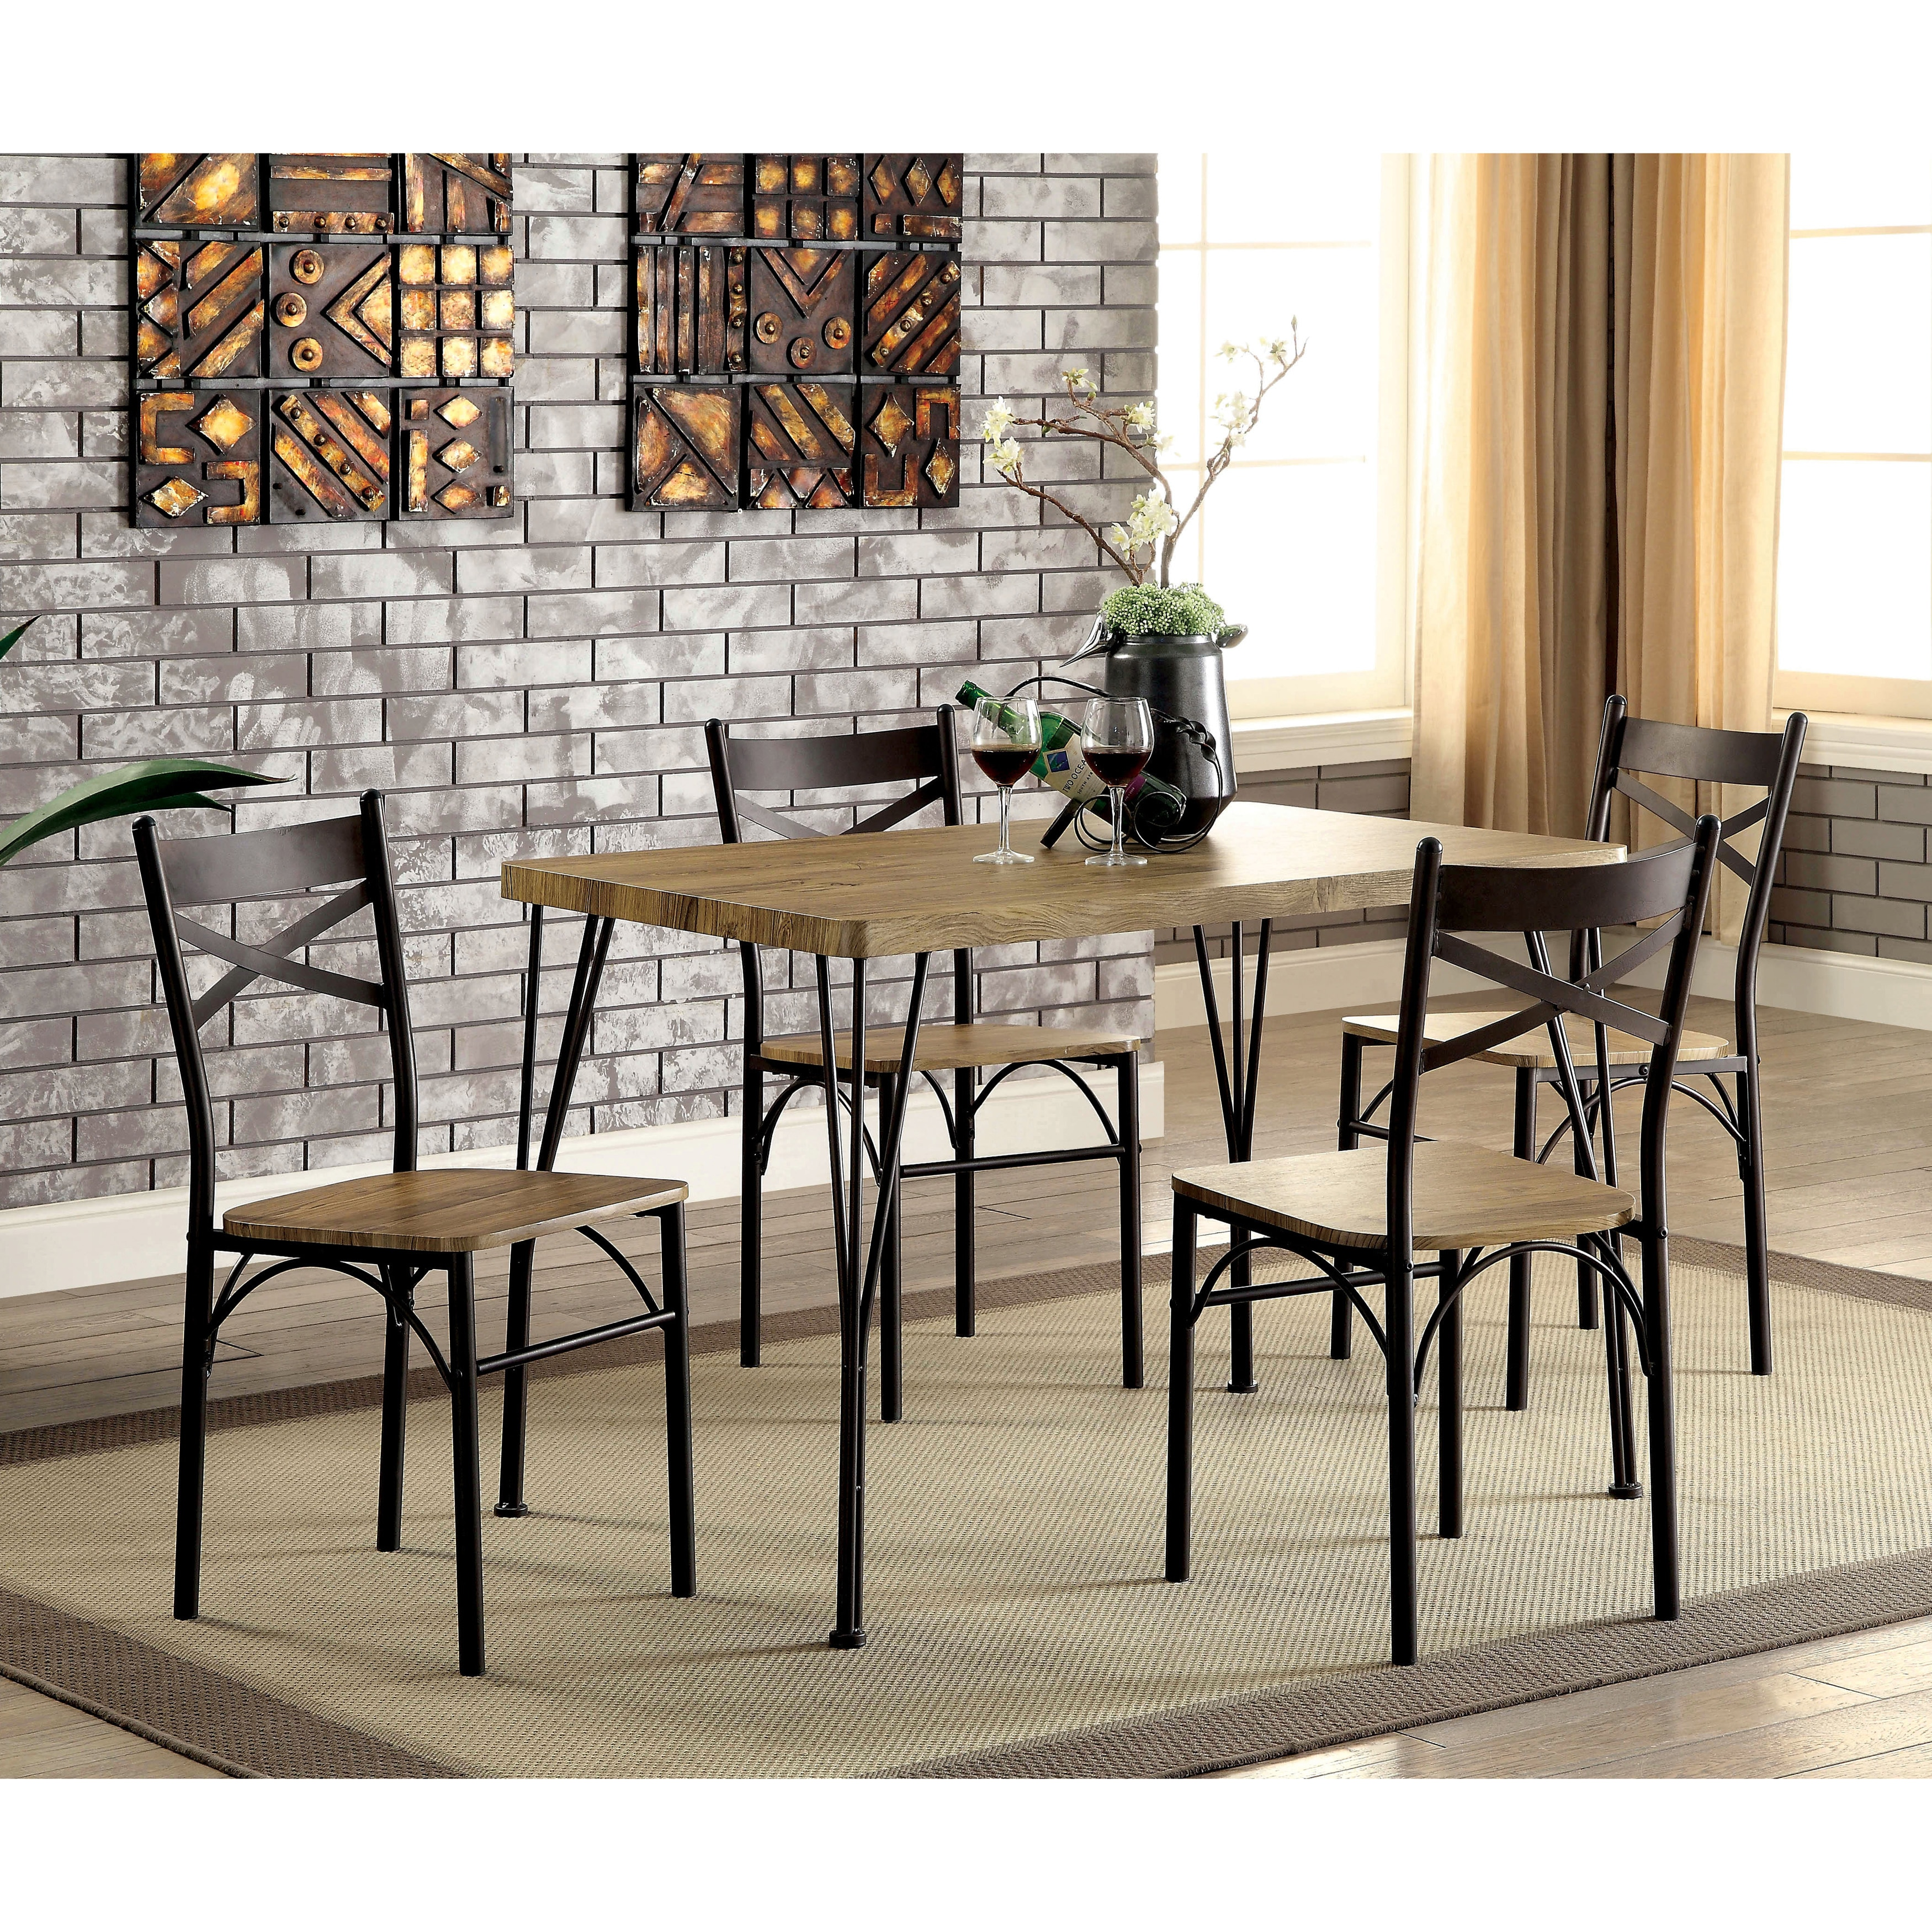 Shop Furniture Of America Hathway Industrial 5 Piece Dark Bronze Small Dining  Set   On Sale   Free Shipping Today   Overstock.com   14538630